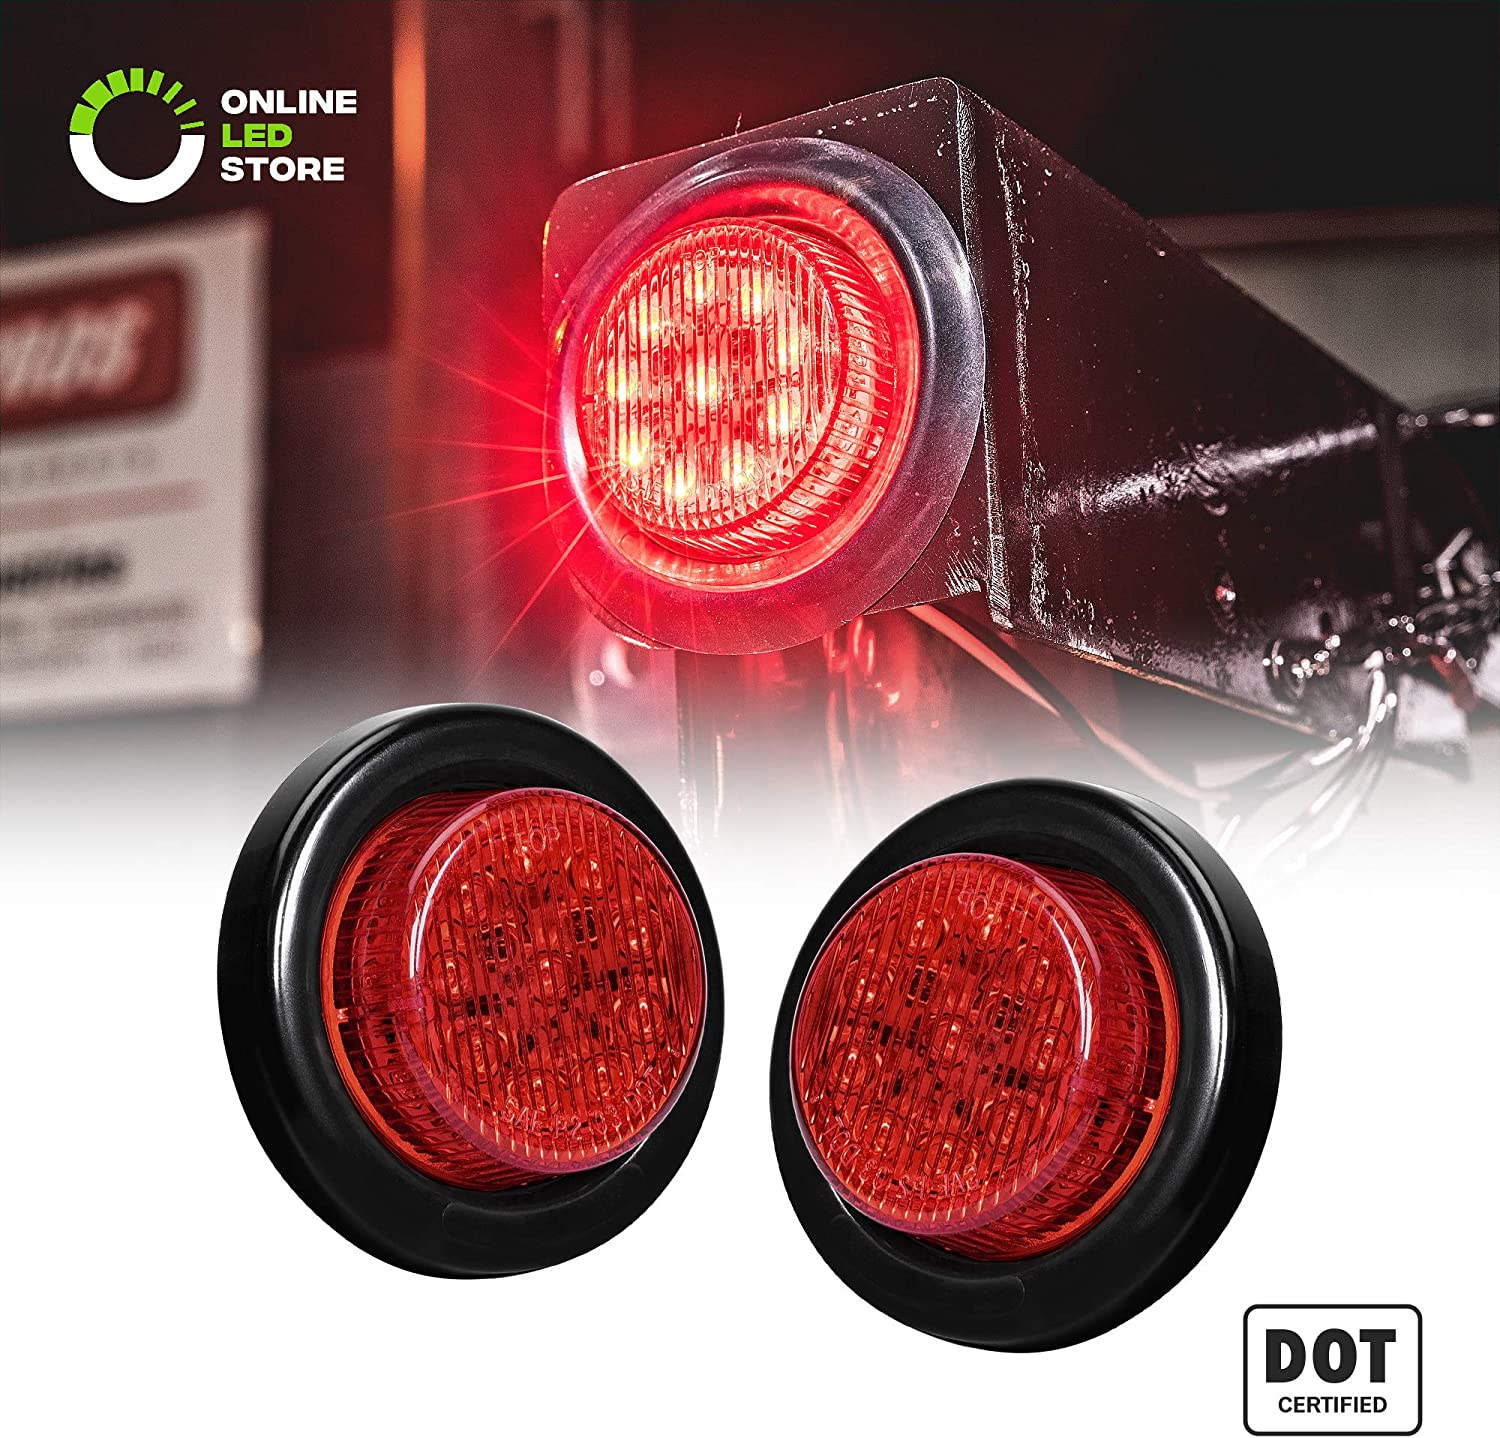 "B077T12Q72 2pc 2"" Red Round Trailer LED Marker Lights [DOT Approved] [Reflector Lens][10 LED] [Grommet] [Flush-Mount] [Waterproof IP67] Marker Lights for Trailer Truck 91Wctj7sqBL"